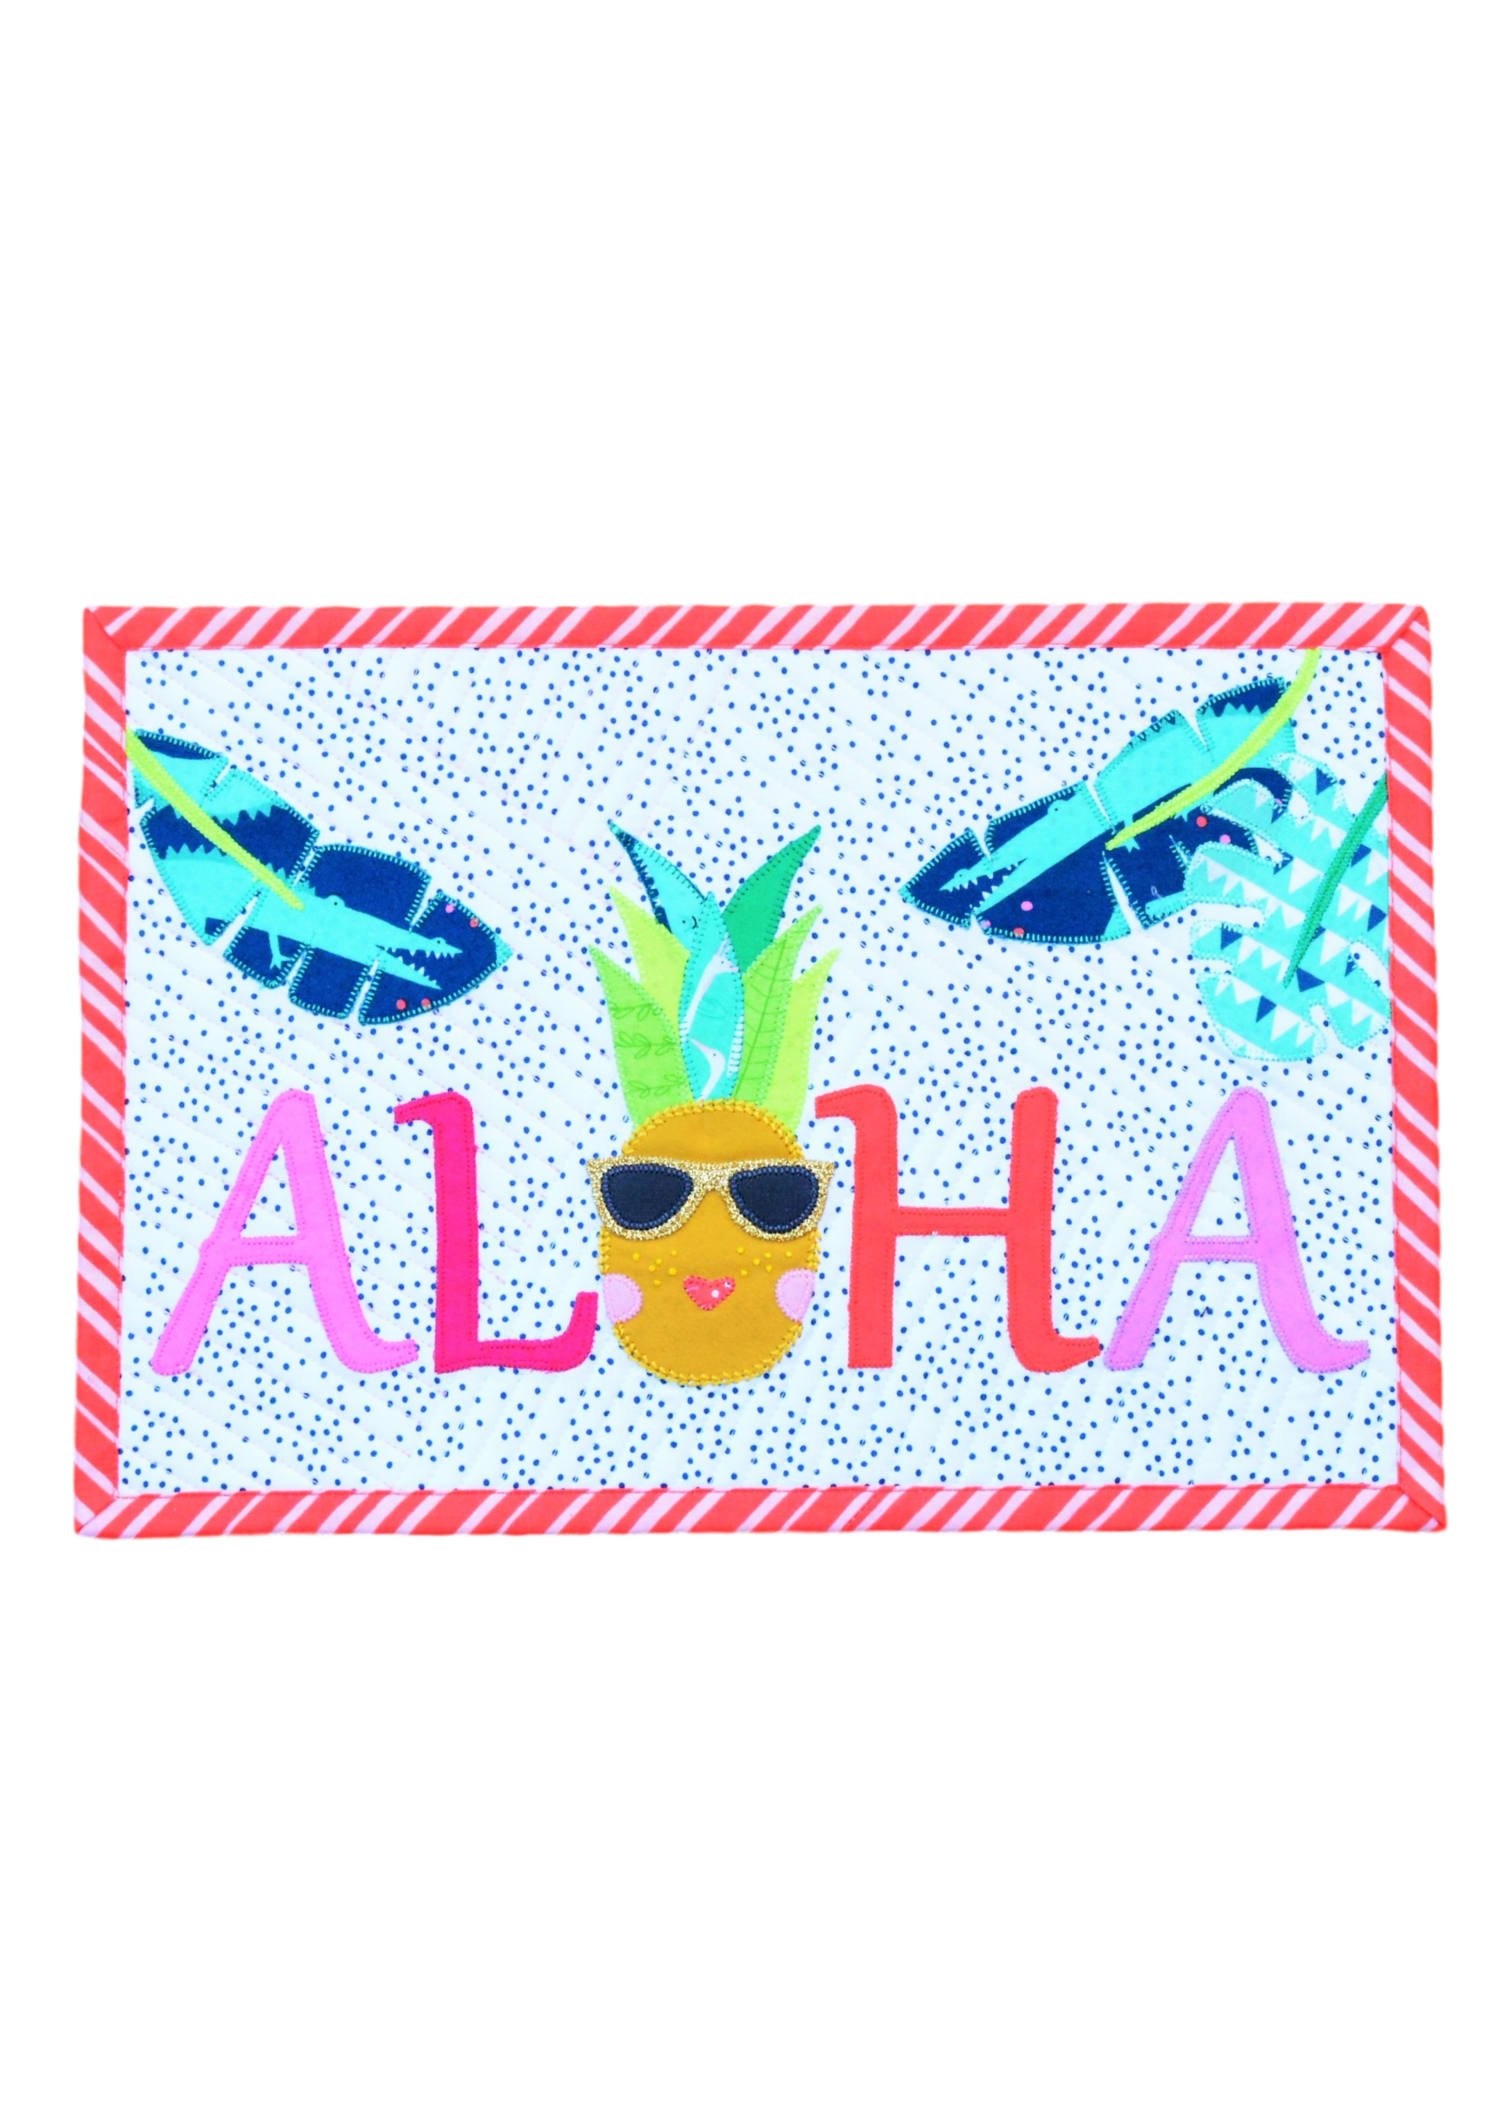 De Aloha Quilt.Monthly Mini Quilt For March Aloha Plus A Giveaway Sewcanshe